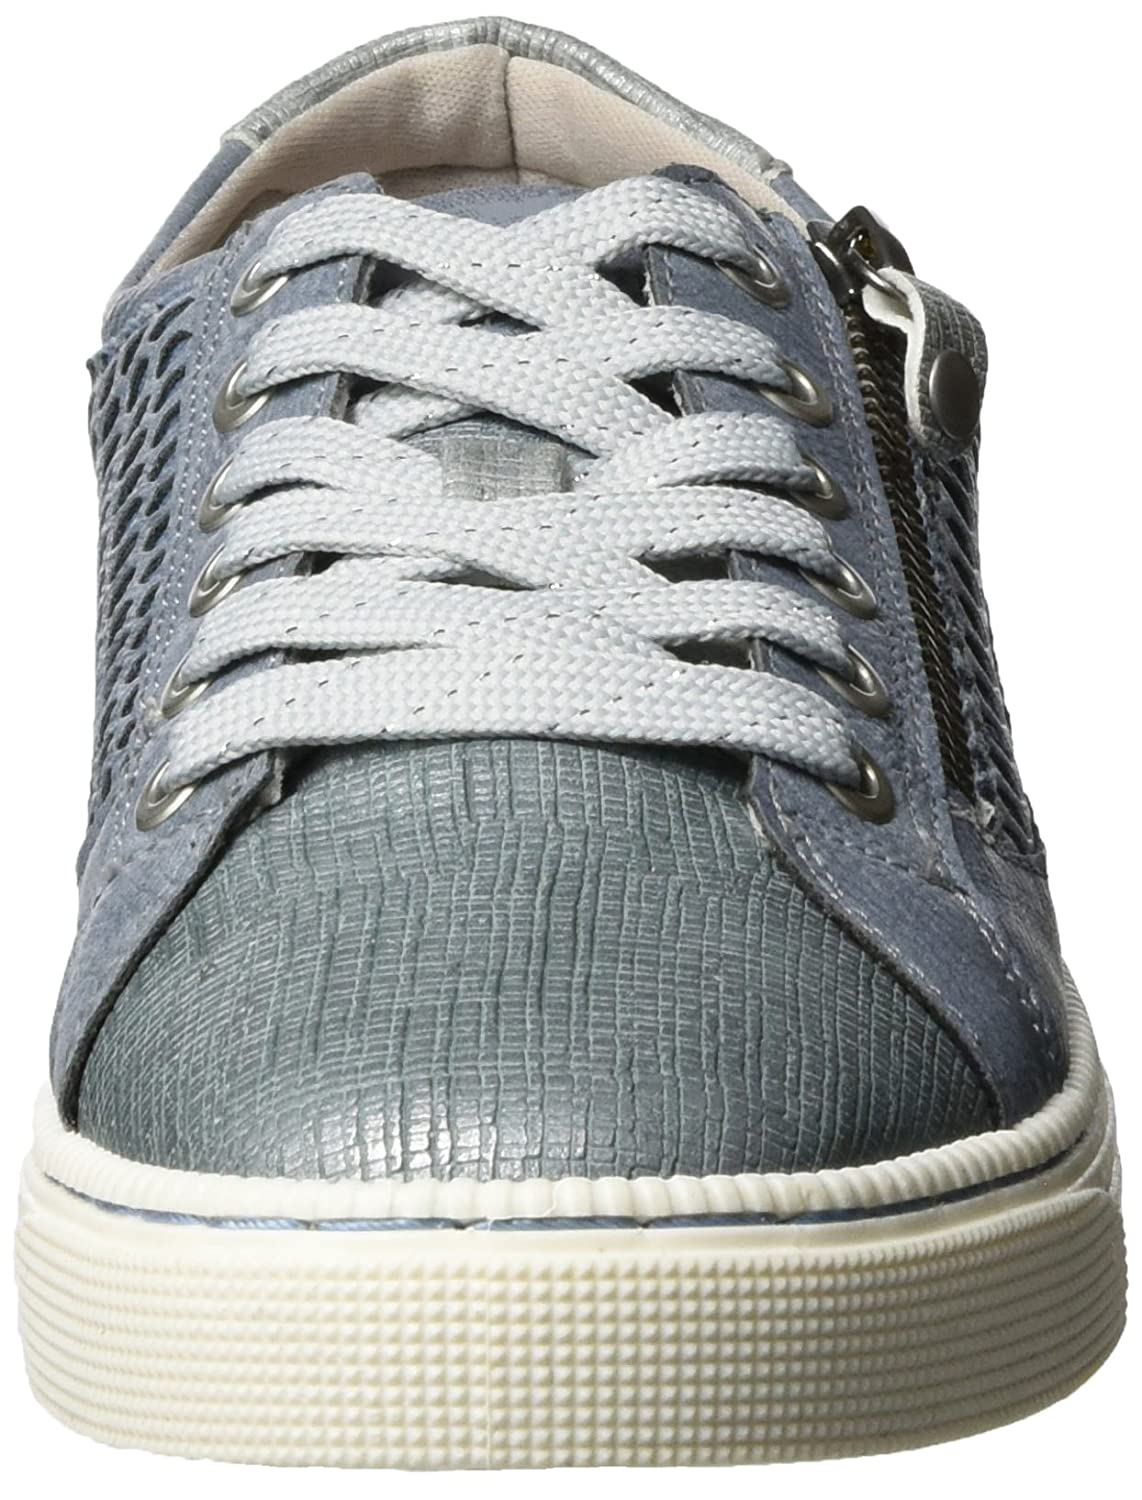 Womens 1246-303-875 Low-Top Sneakers, Blue (875 Sky) Mustang